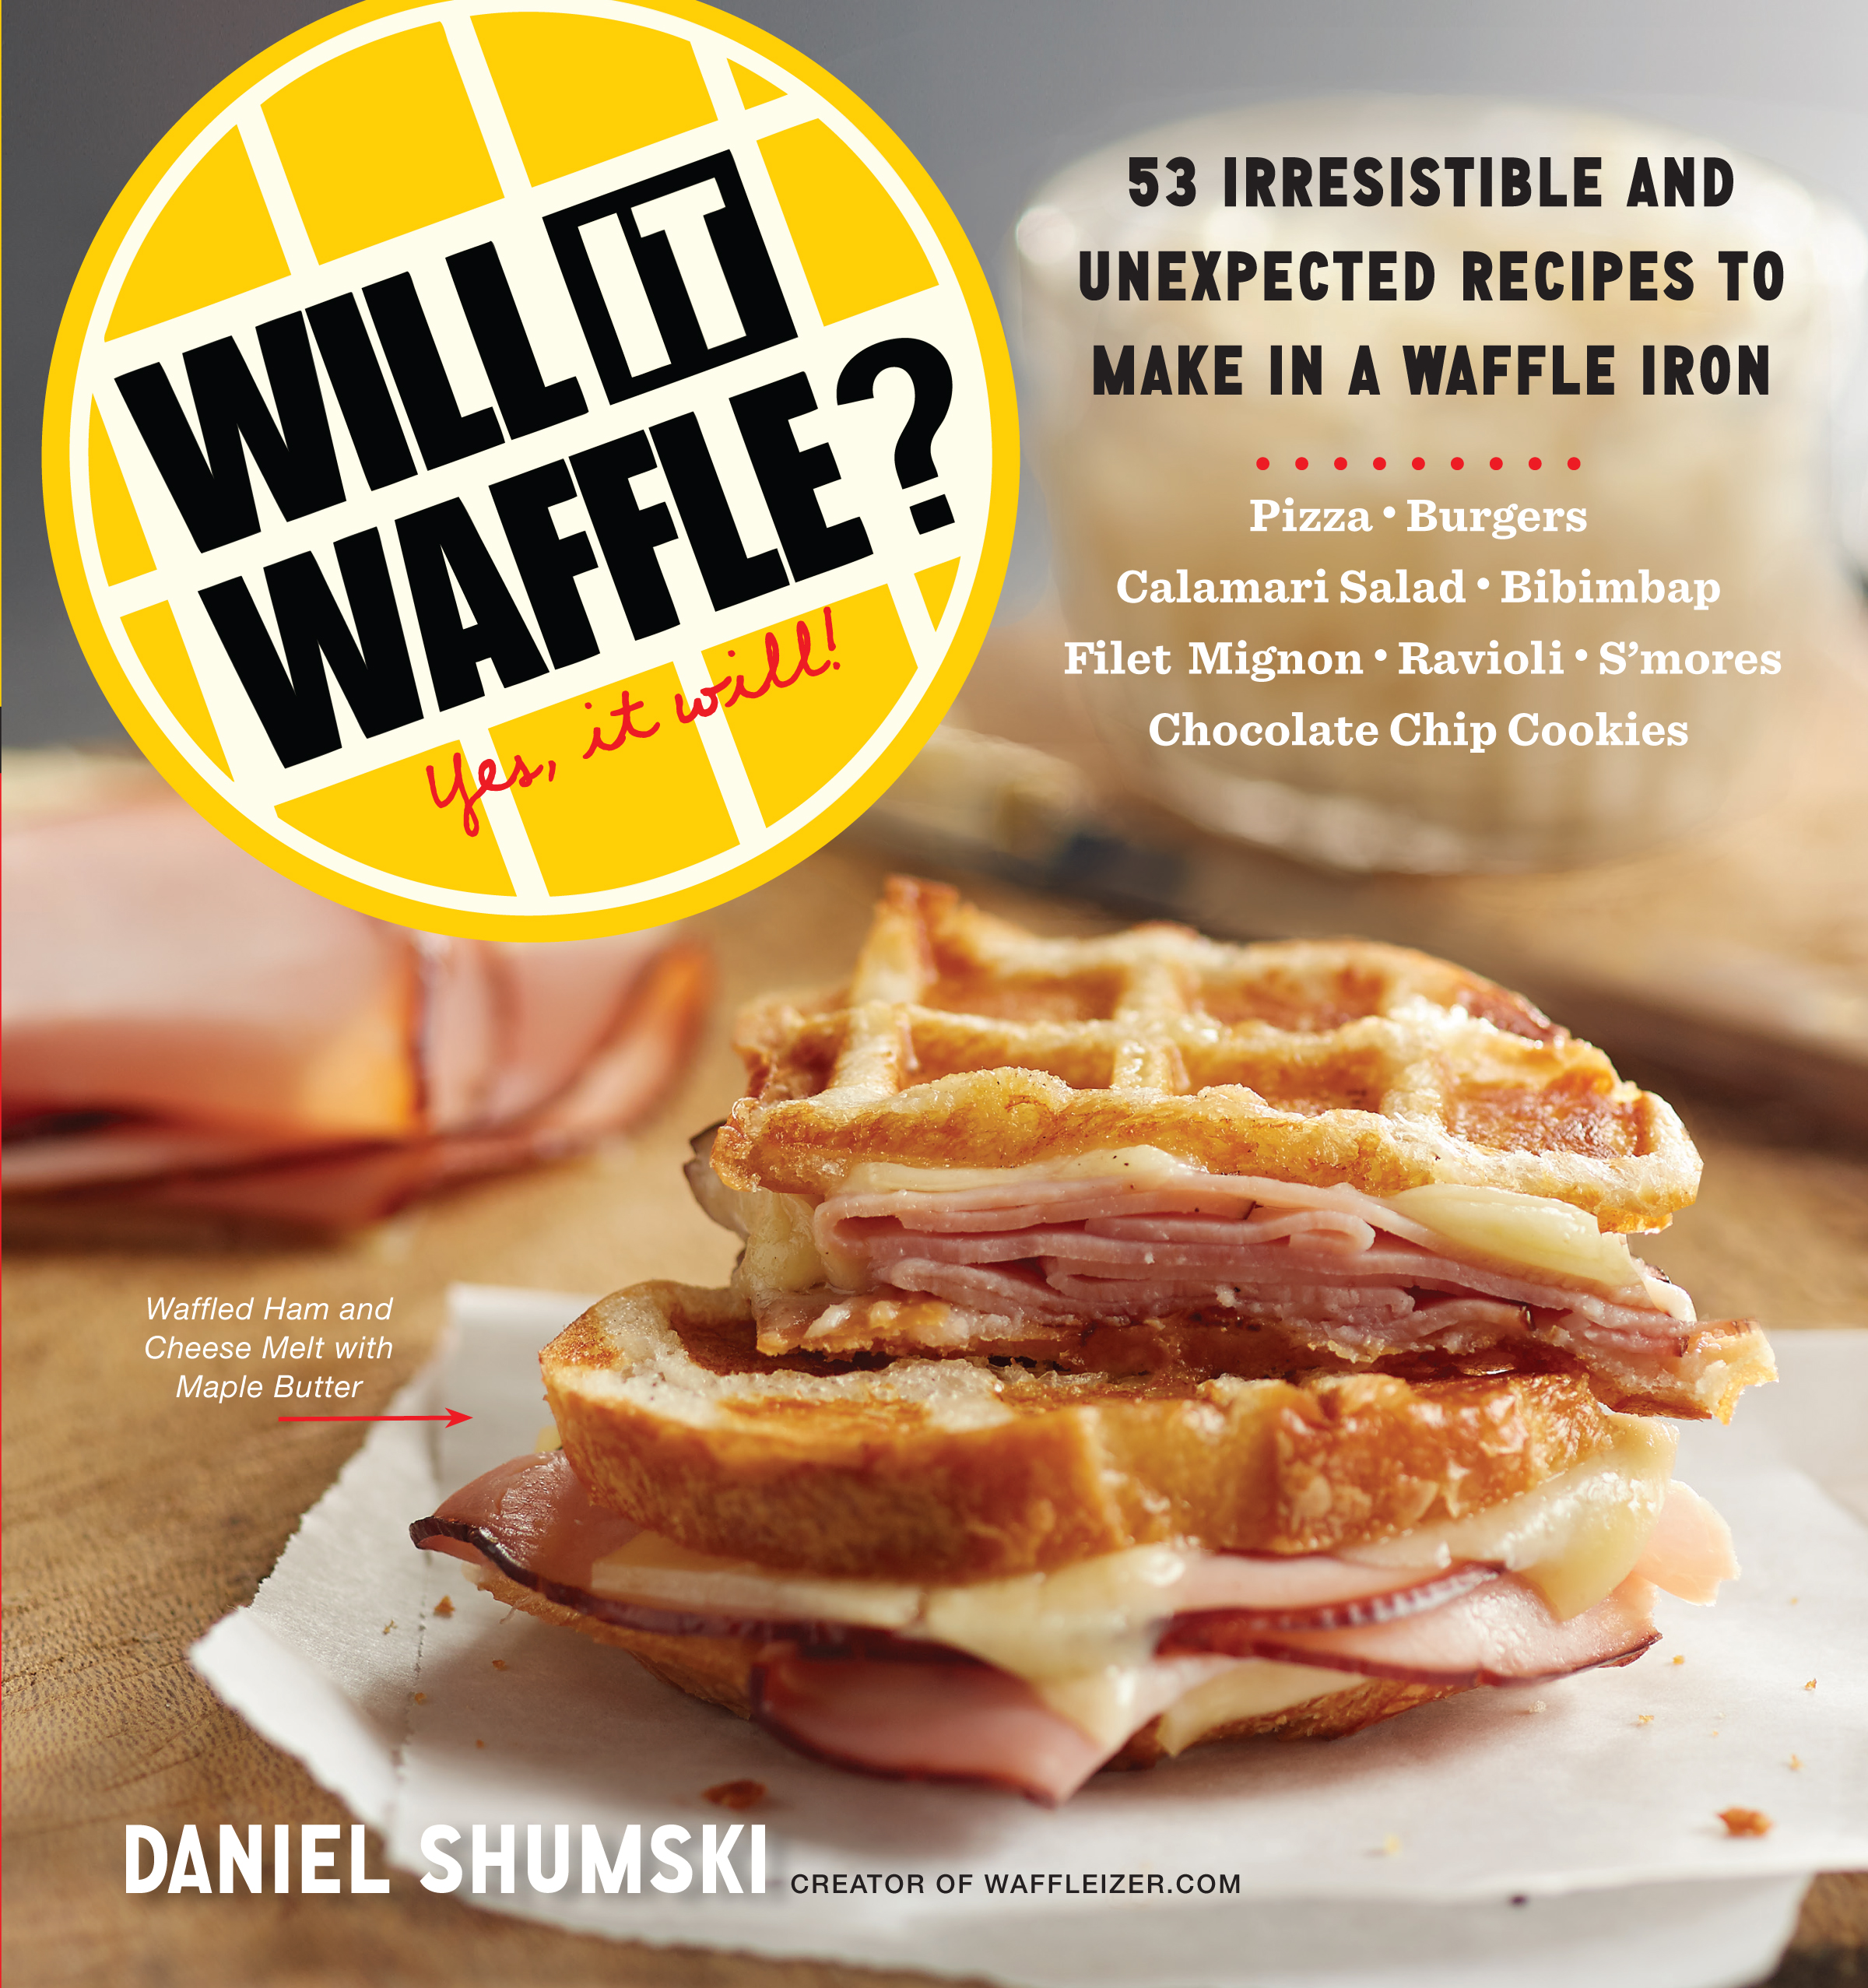 Will it waffle workman publishing download high res image forumfinder Image collections